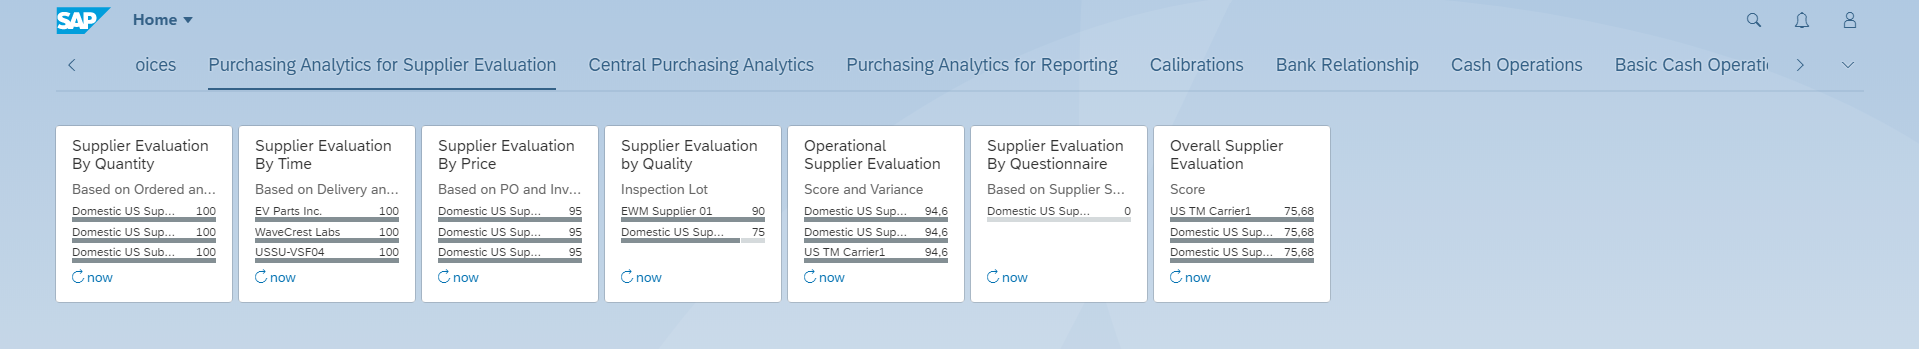 Purchasing%20Analytics%20for%20Supplier%20Evaluation